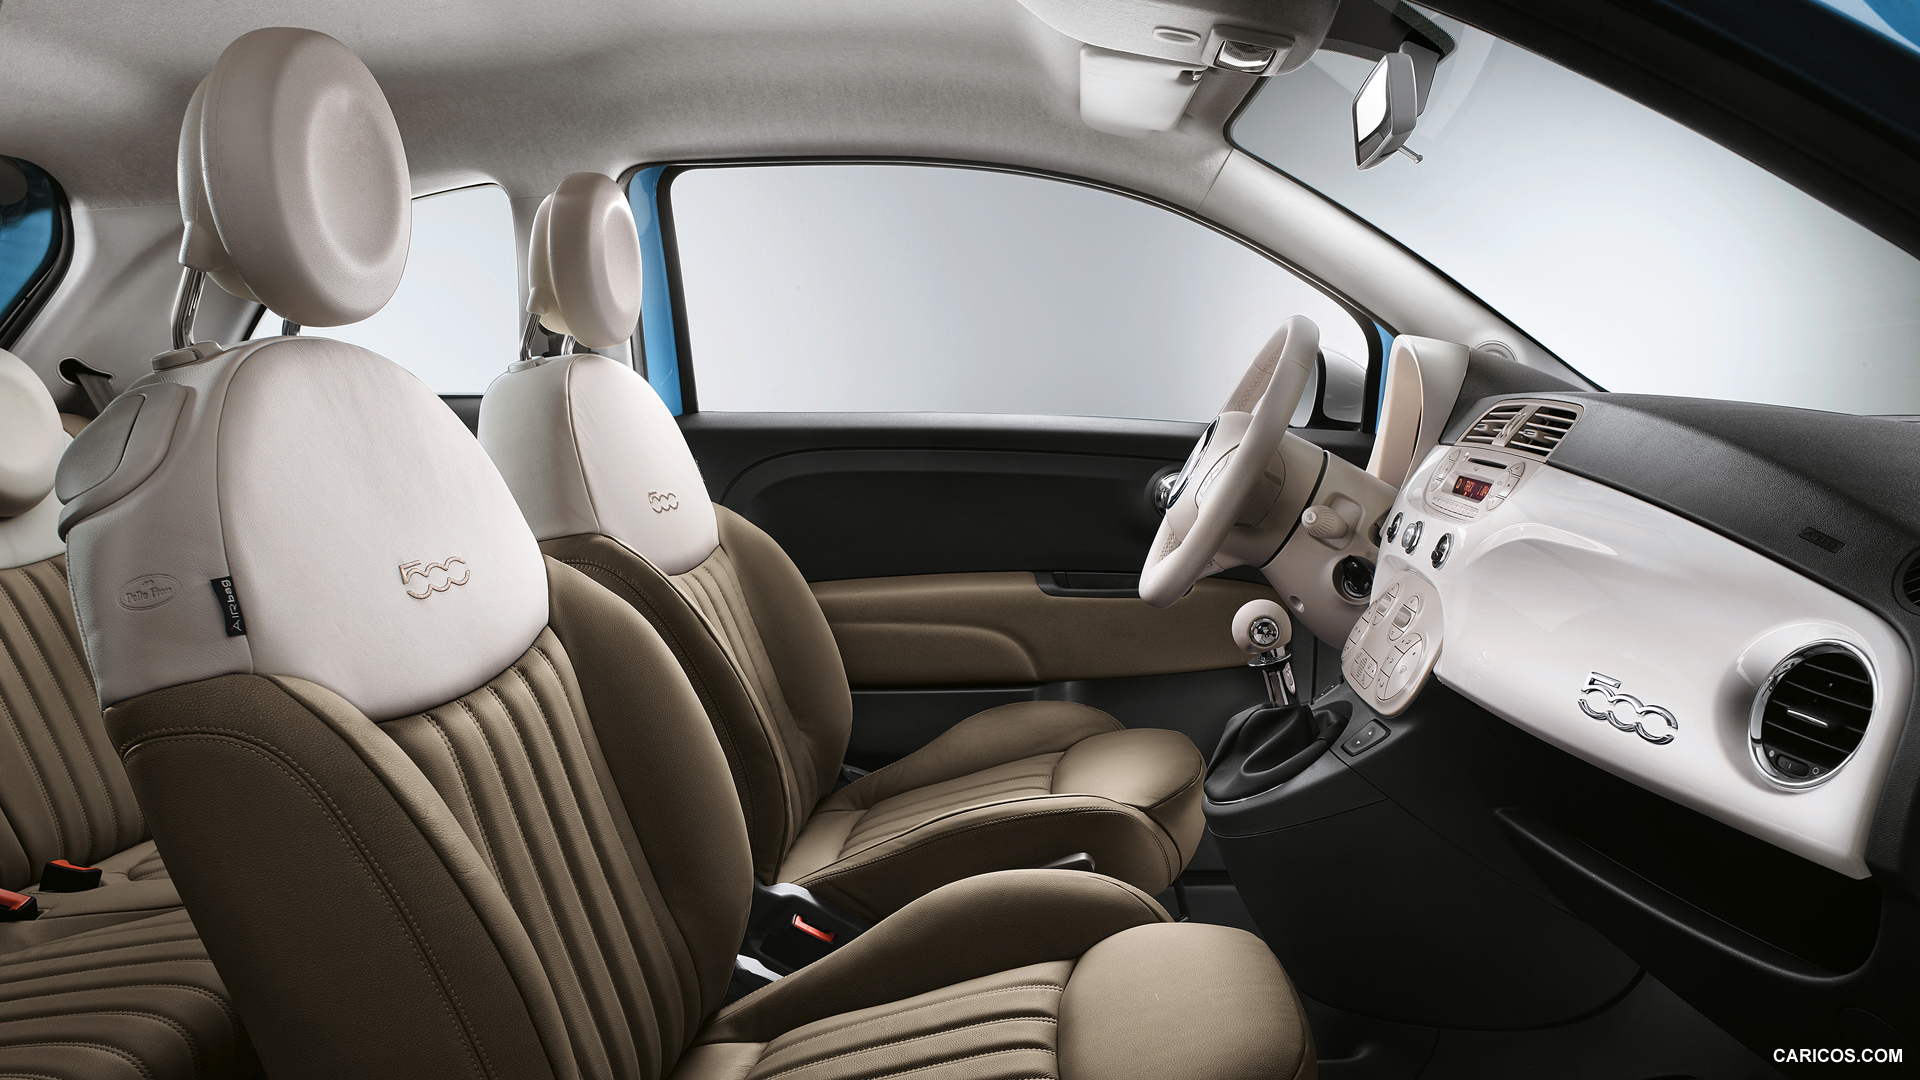 amusing-design-of-the-white-and-brown-seats-idas-with-white-dash-and-black-dash-as-the-fiat-500x-2015-interior